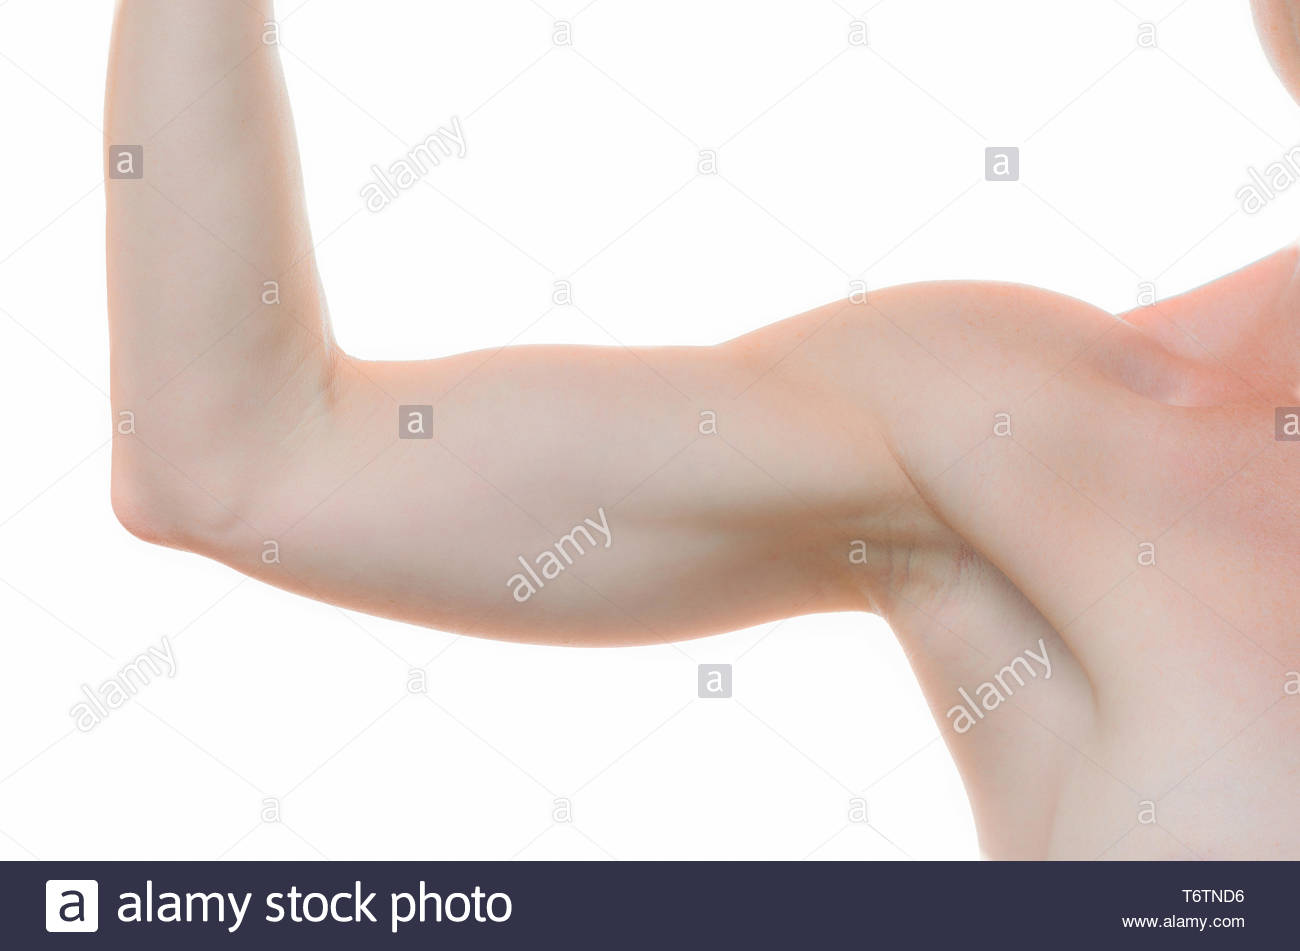 One woman bare shoulder and arm bent at the elbow - Stock Image